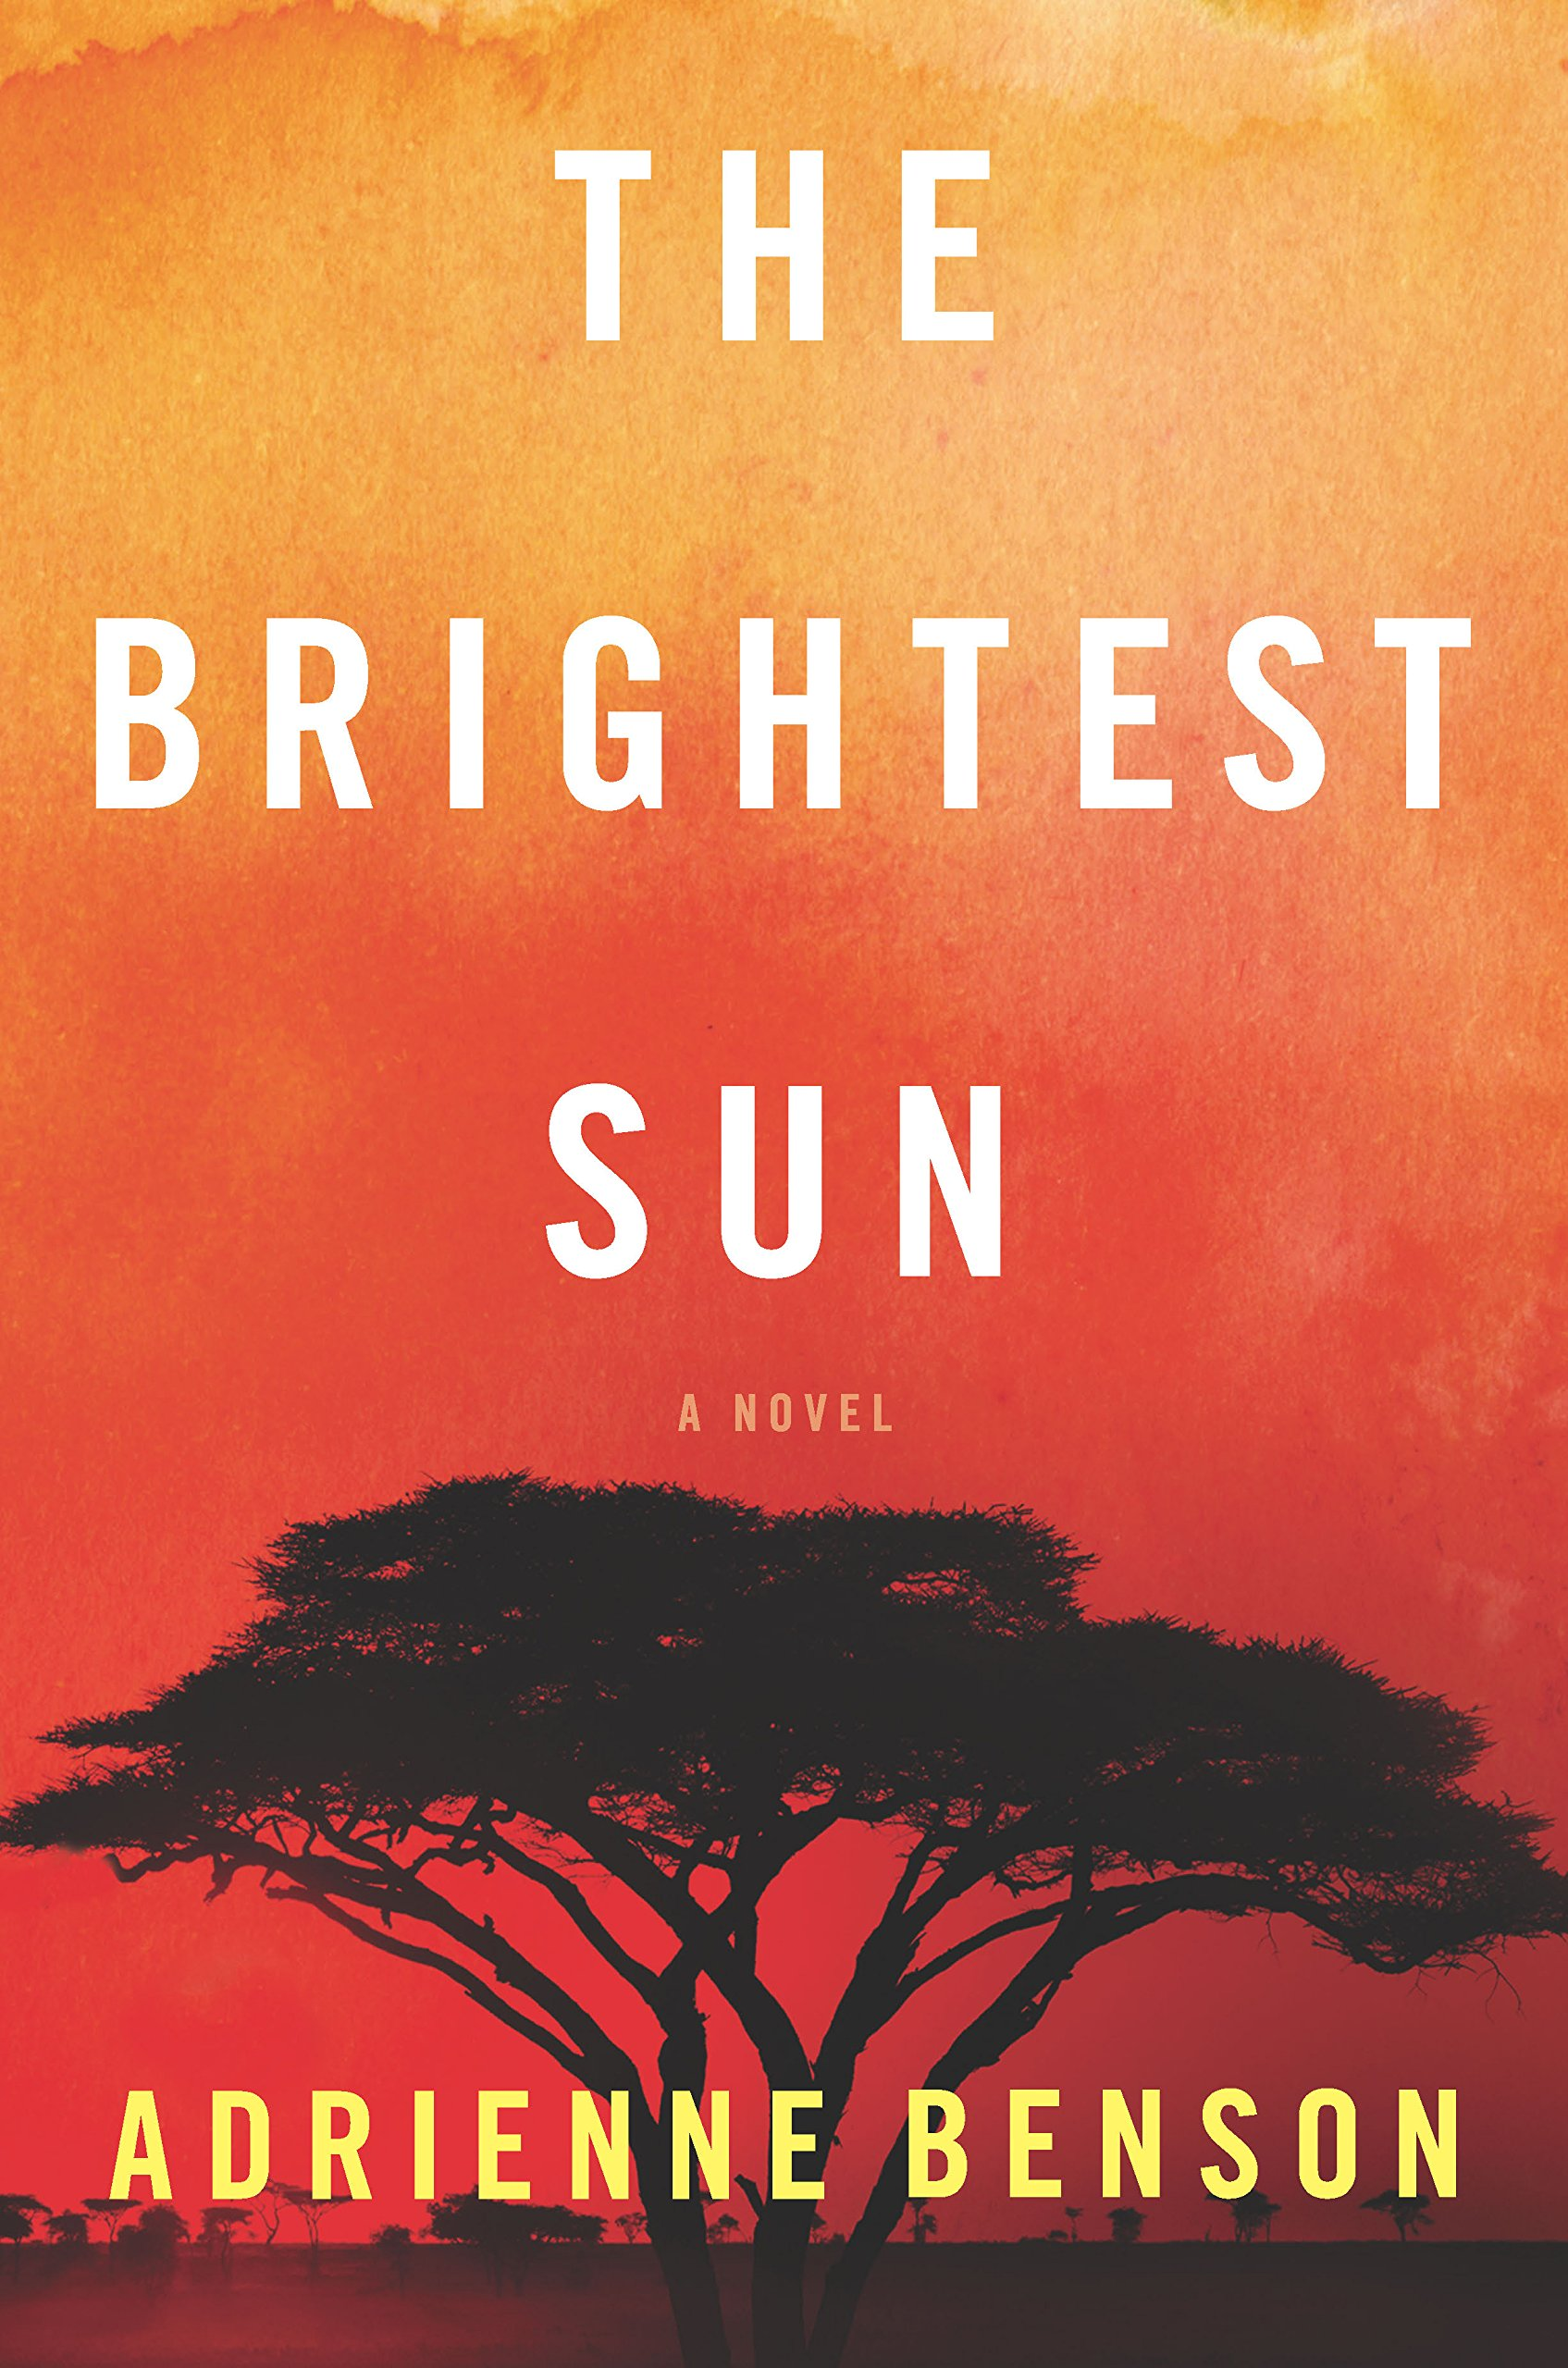 Image result for the brightest sun by adrienne benson